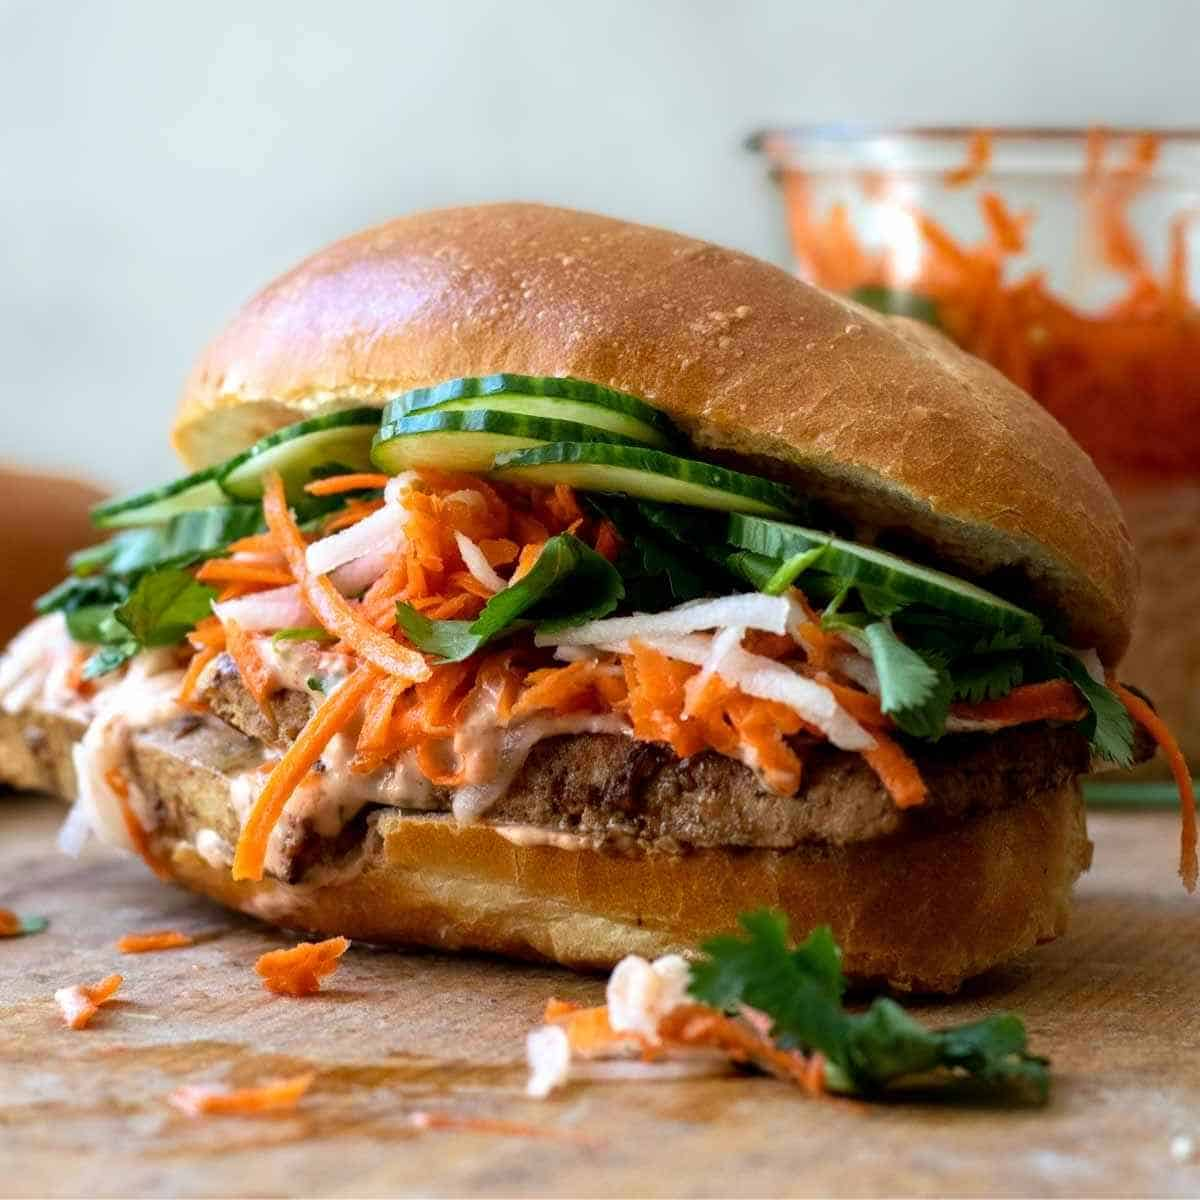 Banh mi sandwich topped with quick pickle vegetables on wooden table.